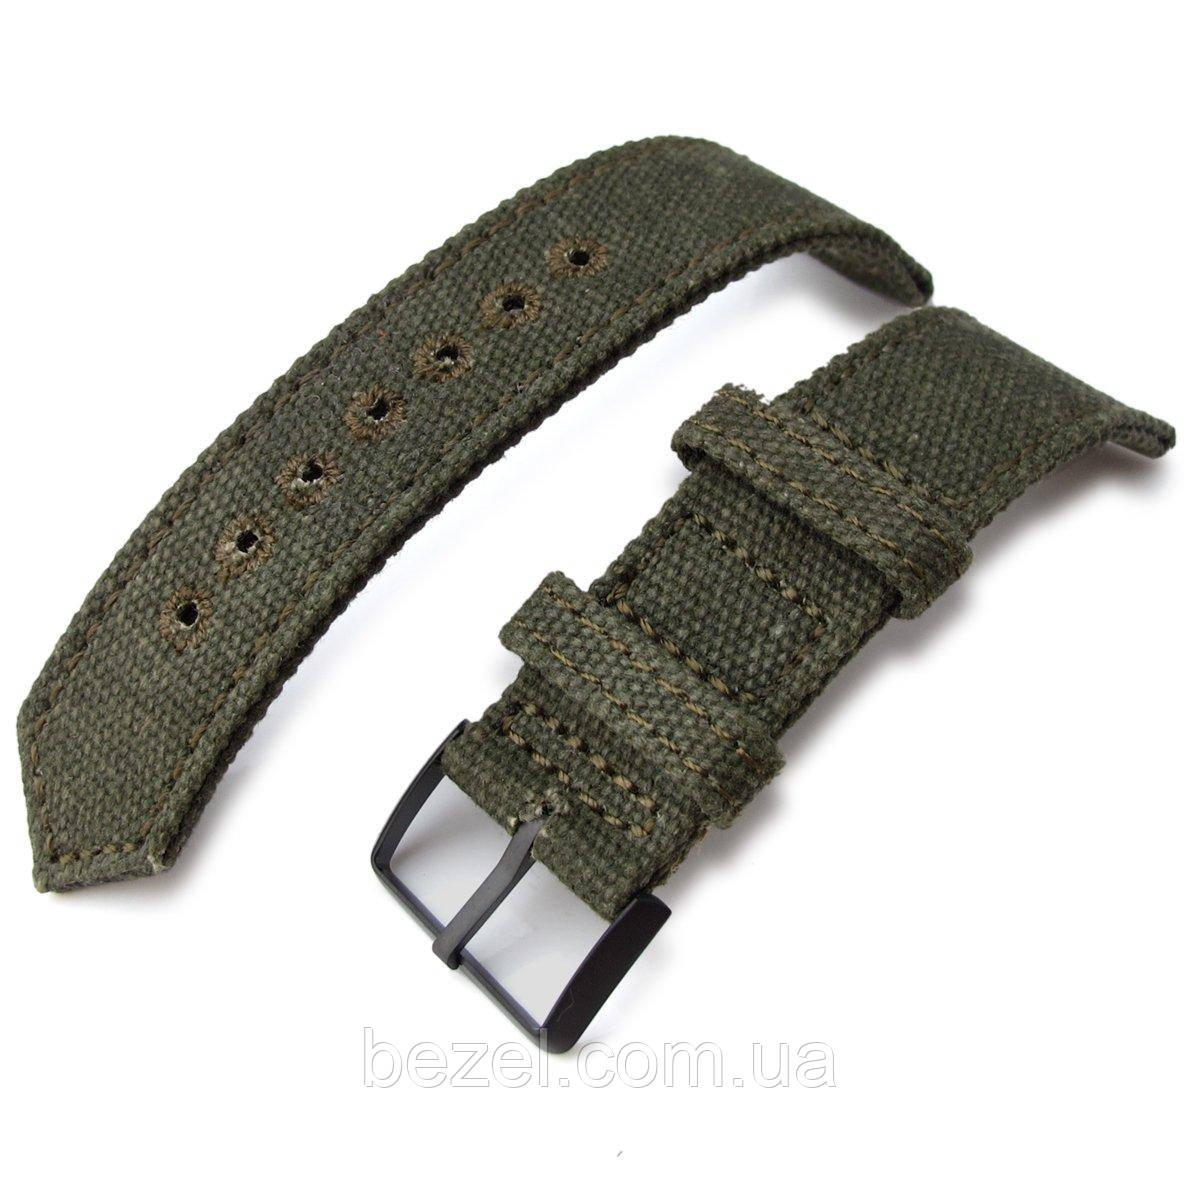 20mm, 21mm or 22mm MiLTAT WW2 2-piece Military Green Washed Canvas Watch Band with lockstitch round hole, PVD Black